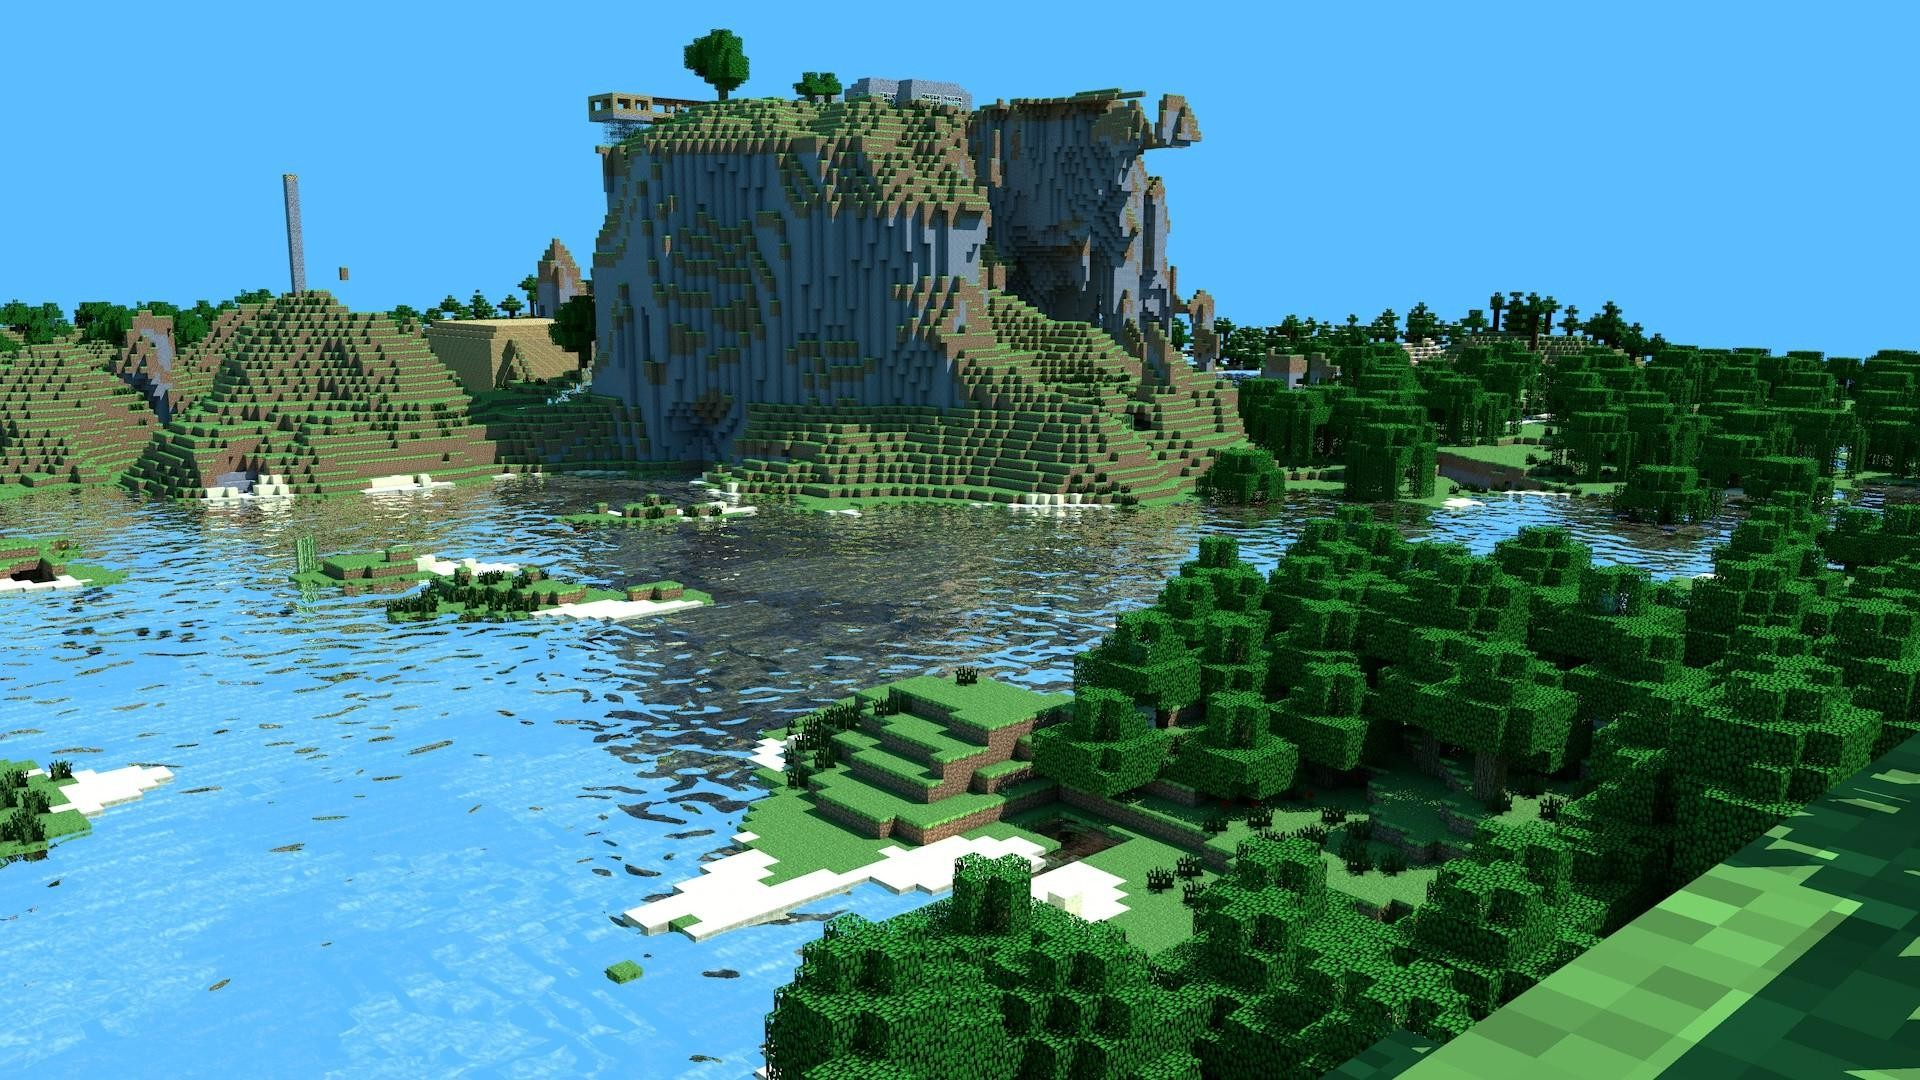 Res: 1920x1080, Wallpapers-HD-Minecraft-Gallery-(80-Plus)-PIC-WPW2011191